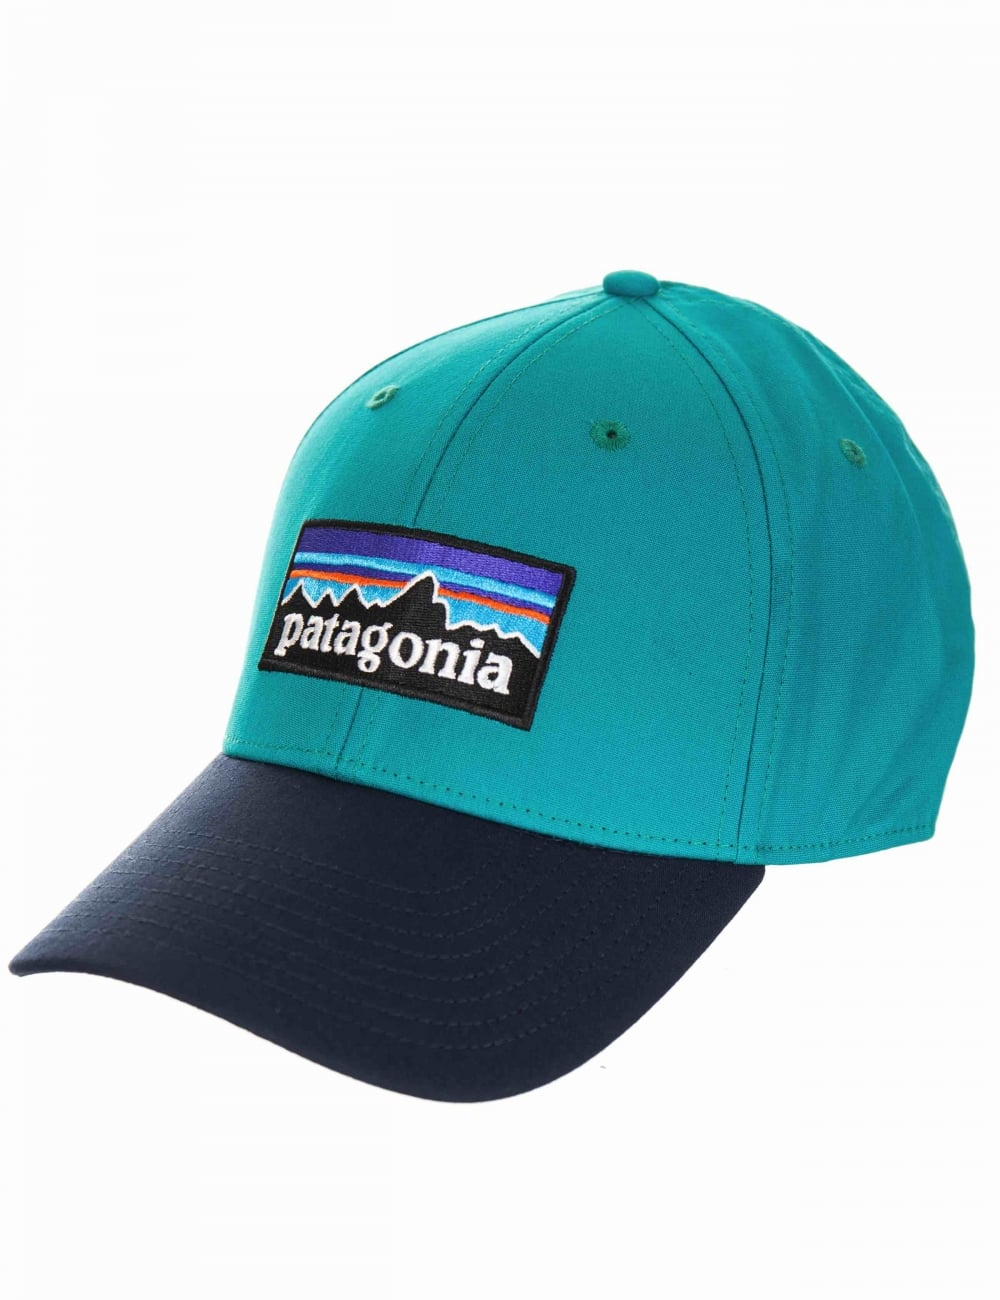 Patagonia P-6 Logo Stretch Fit Hat - True Teal - Accessories from ... 779f407af8a